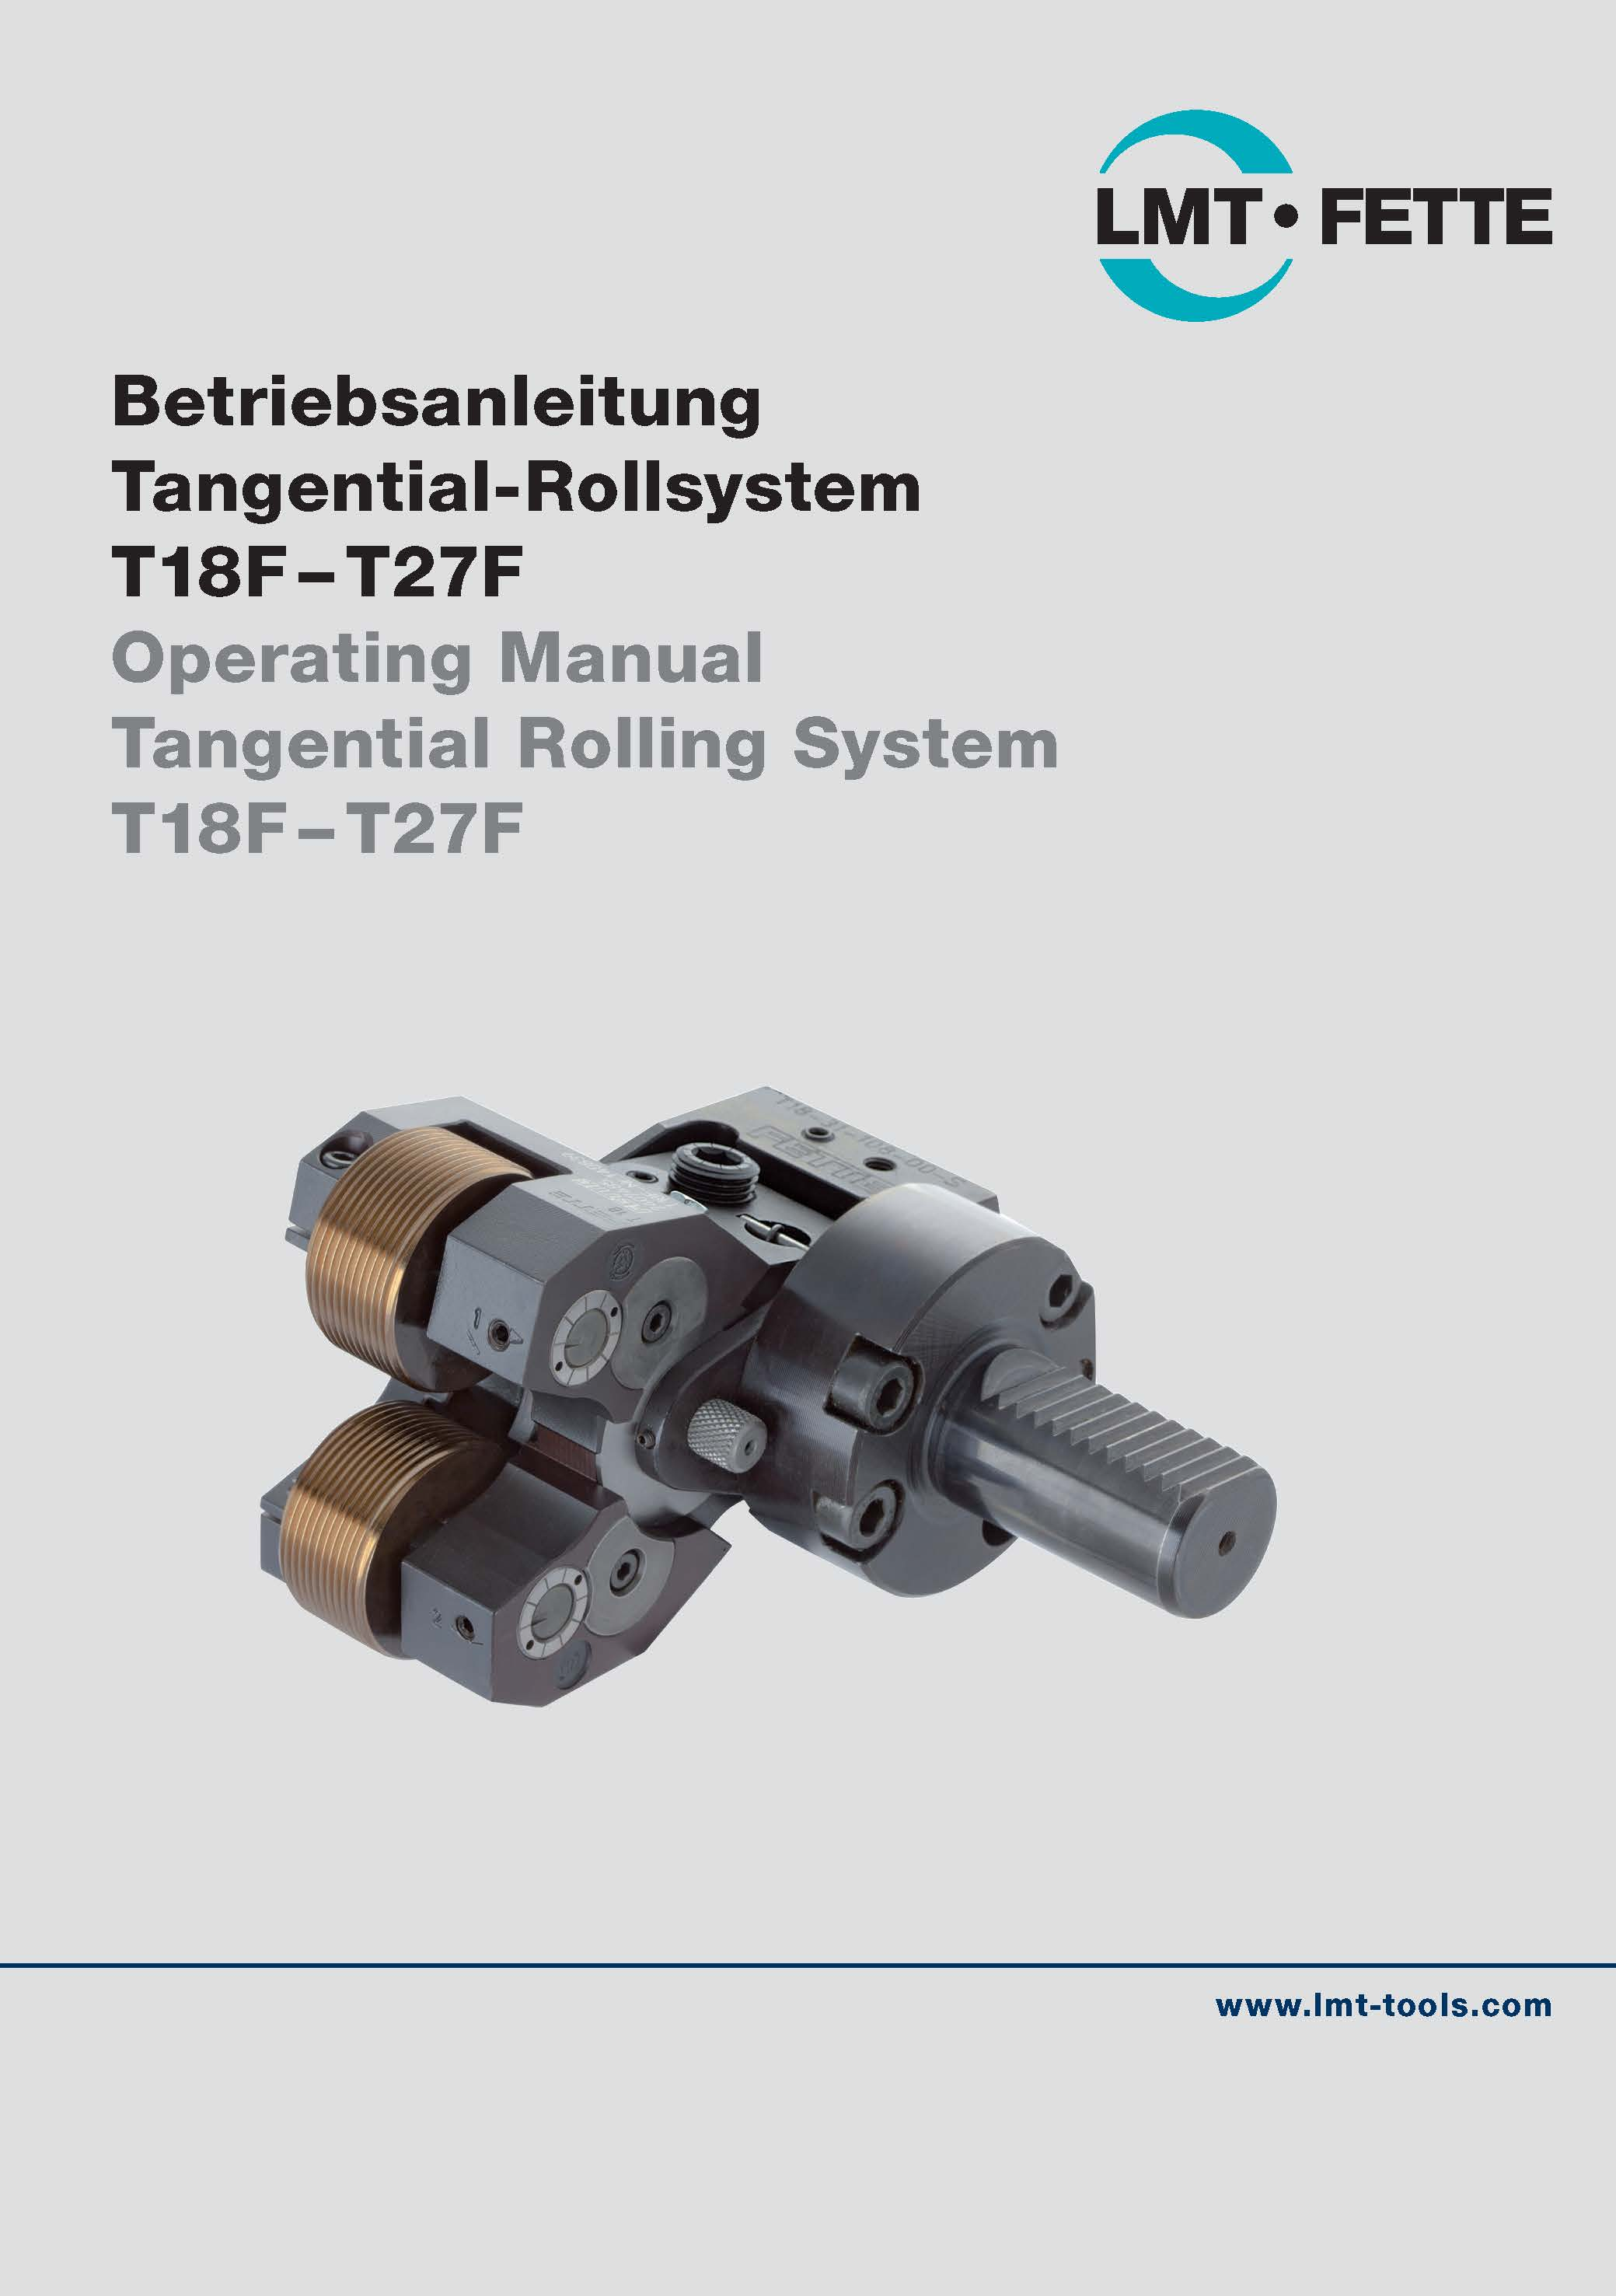 Operating Manual Tangential Rolling System T18F-T27F